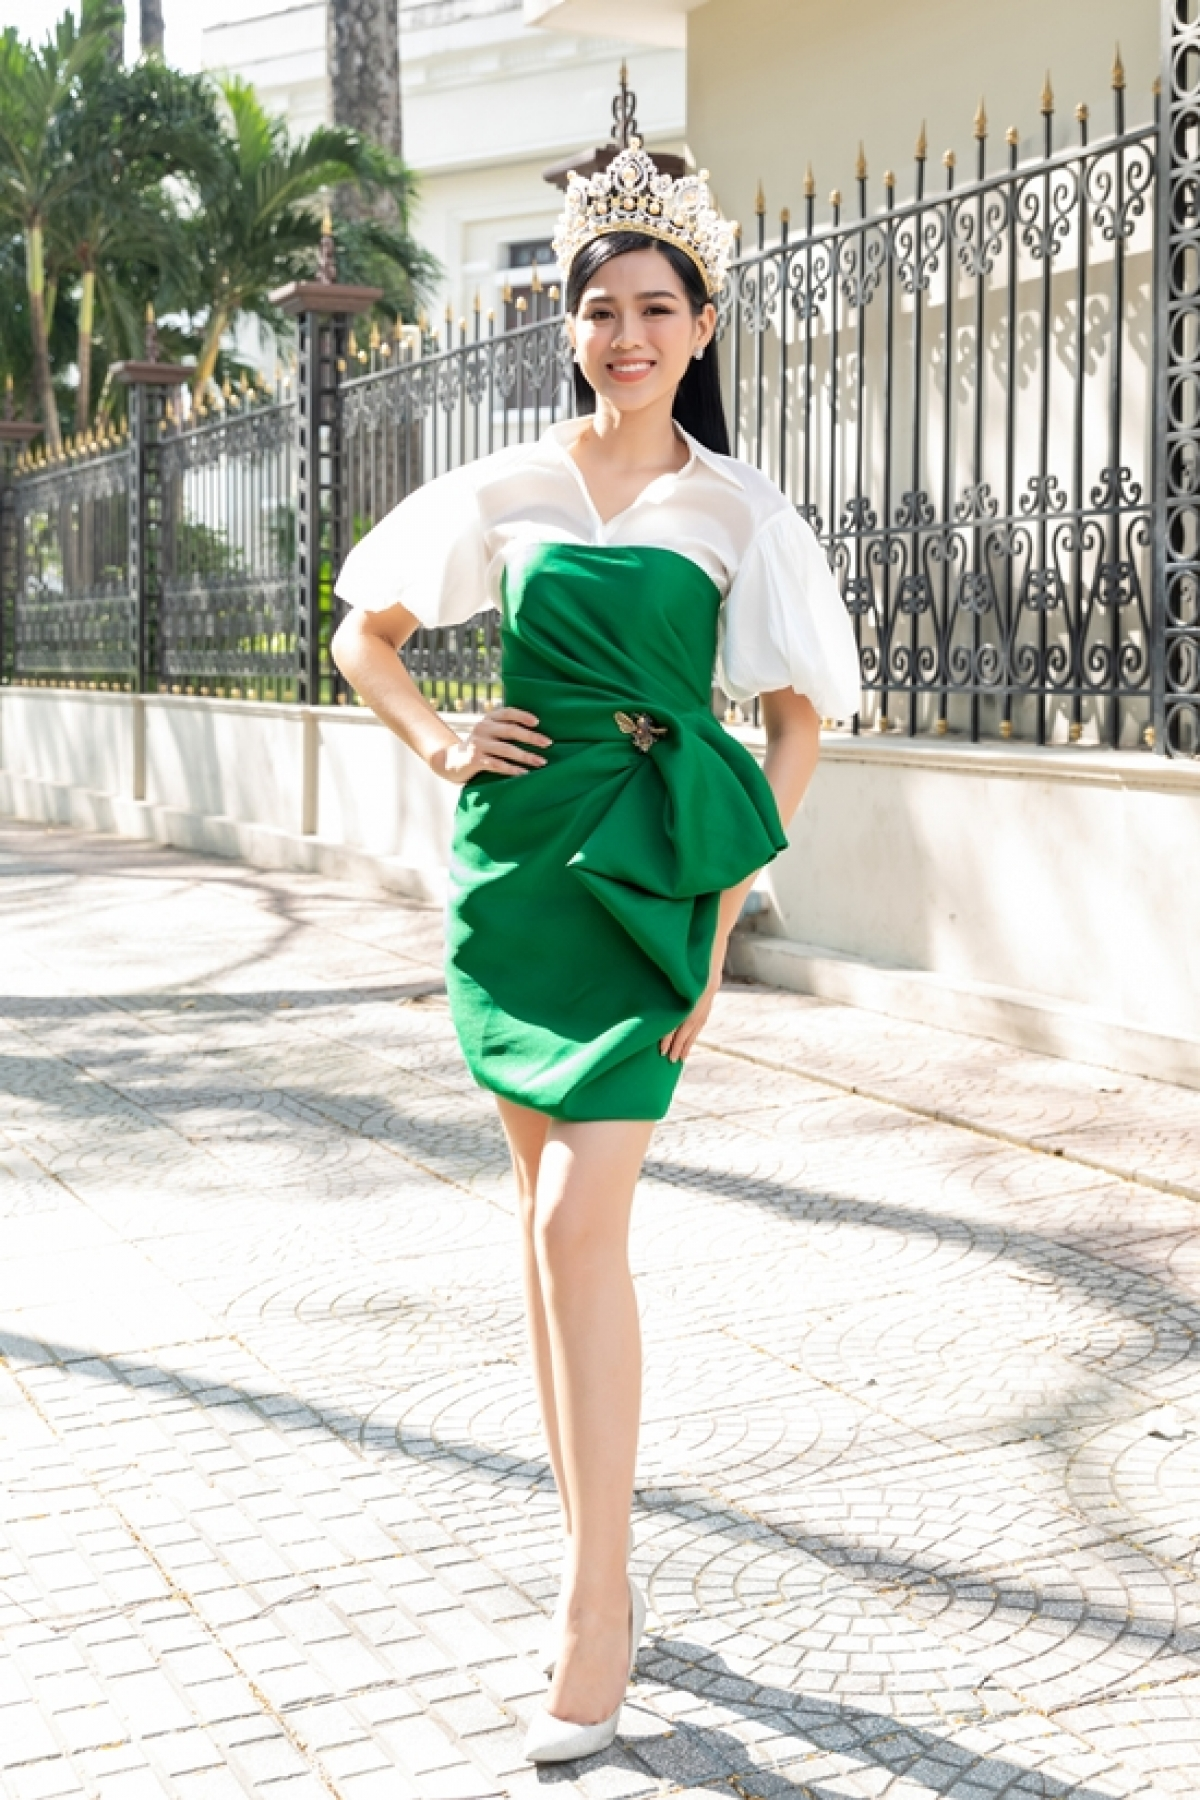 A native of Thanh Hoa, Ha beat off competition from 34 other contestants in the finale of the national pageant in order to clinch the trophy. She is currently studying business law at the National Economics University in Hanoi and stands at 1.75 metres tall and measures 80-60-90.